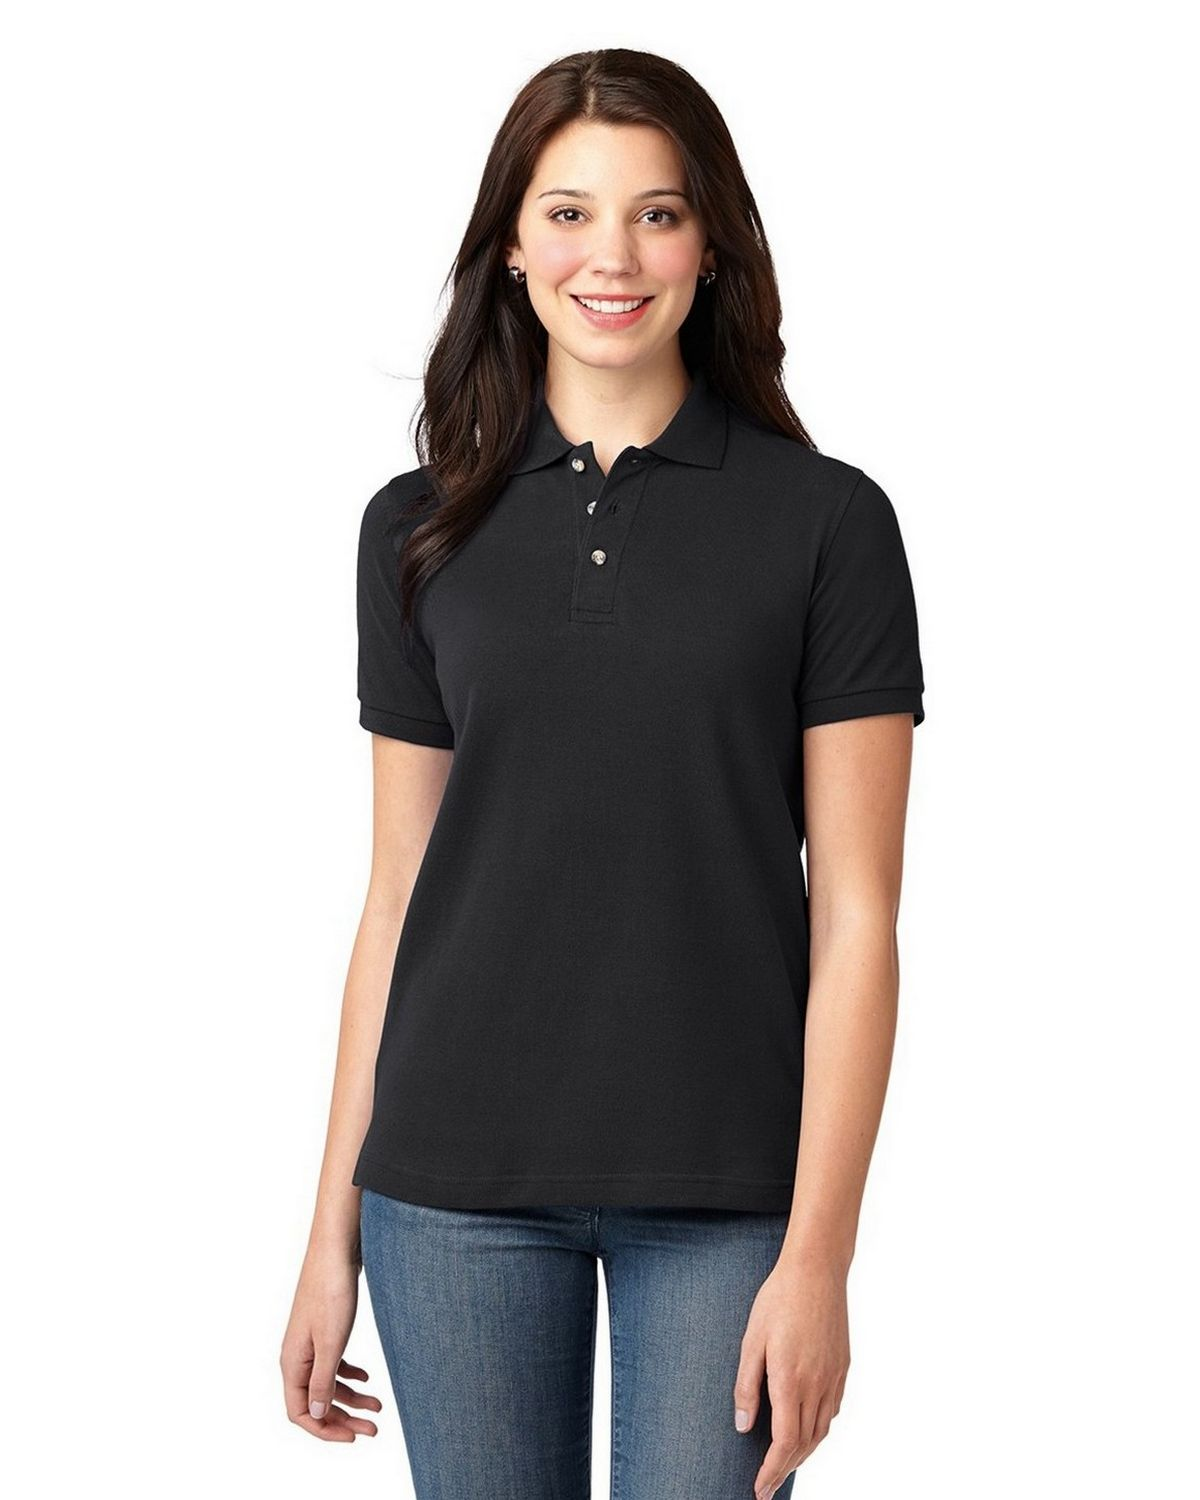 Port Authority L420 Pique Knit Polo - Black - XS